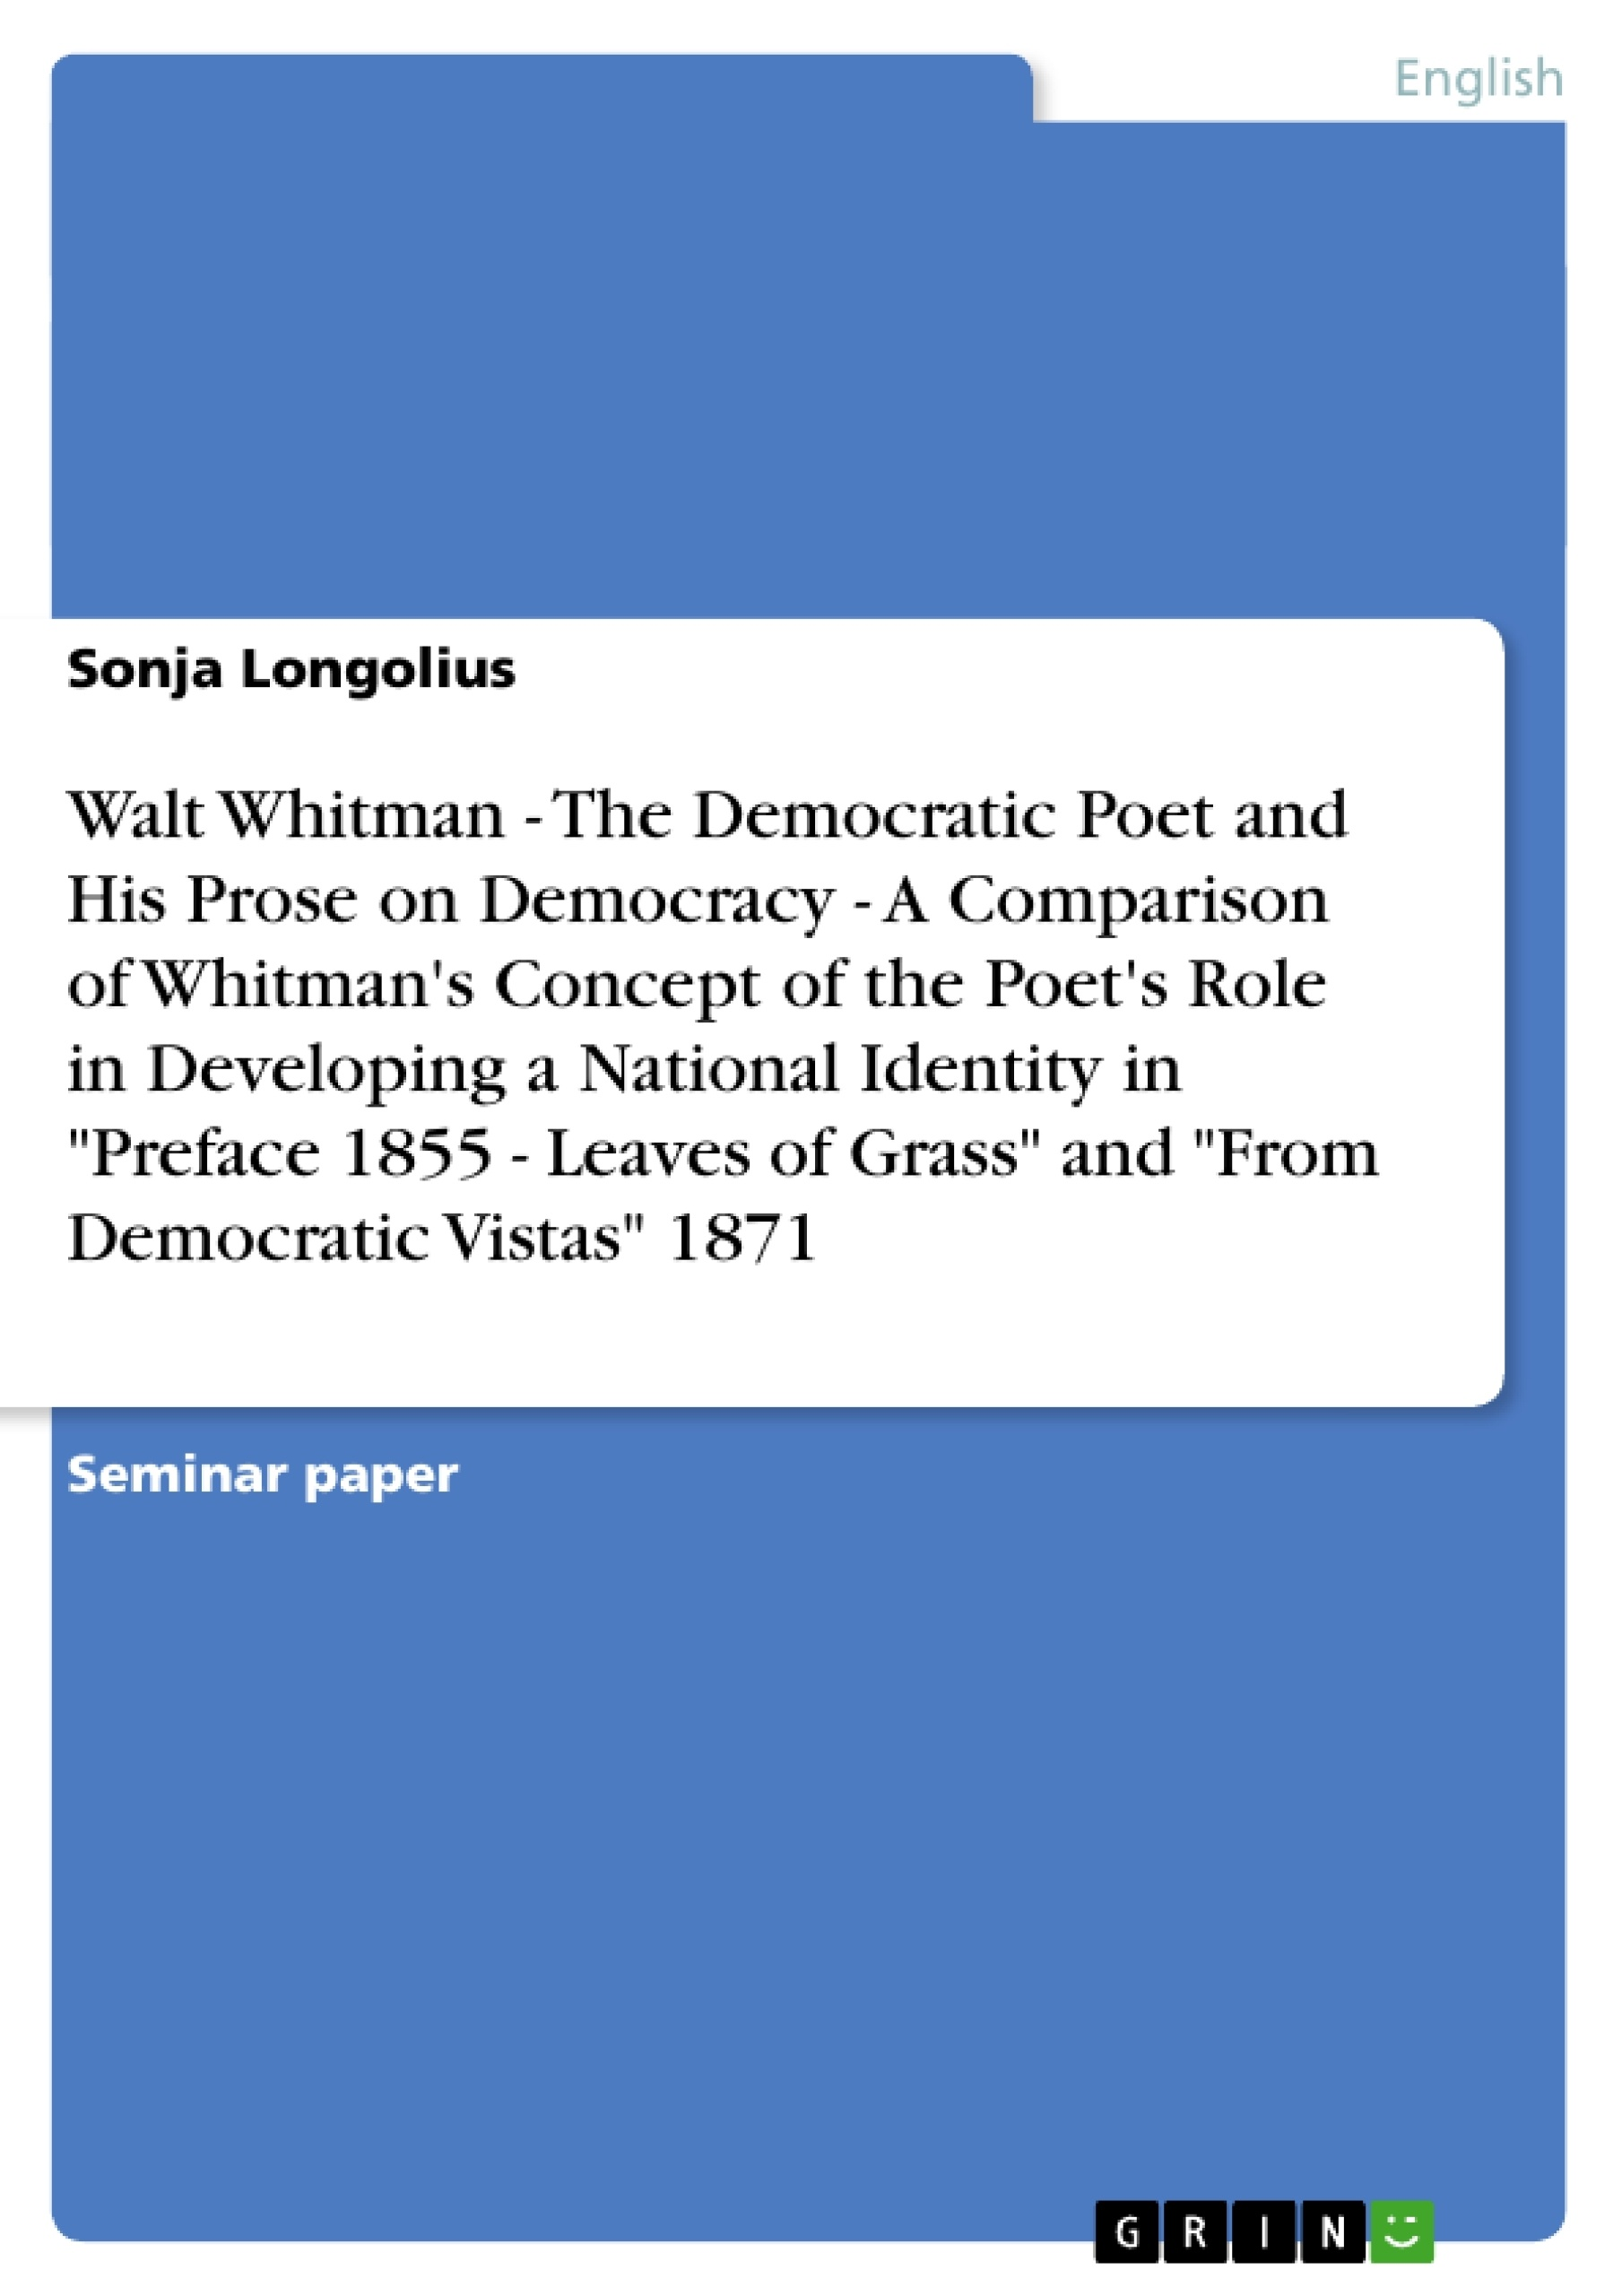 """Title: The Democratic Poet and His Prose on Democracy. The Poet's Role in Walt Whitman's  """"Preface 1855 - Leaves of Grass"""" and """"From Democratic Vistas"""""""